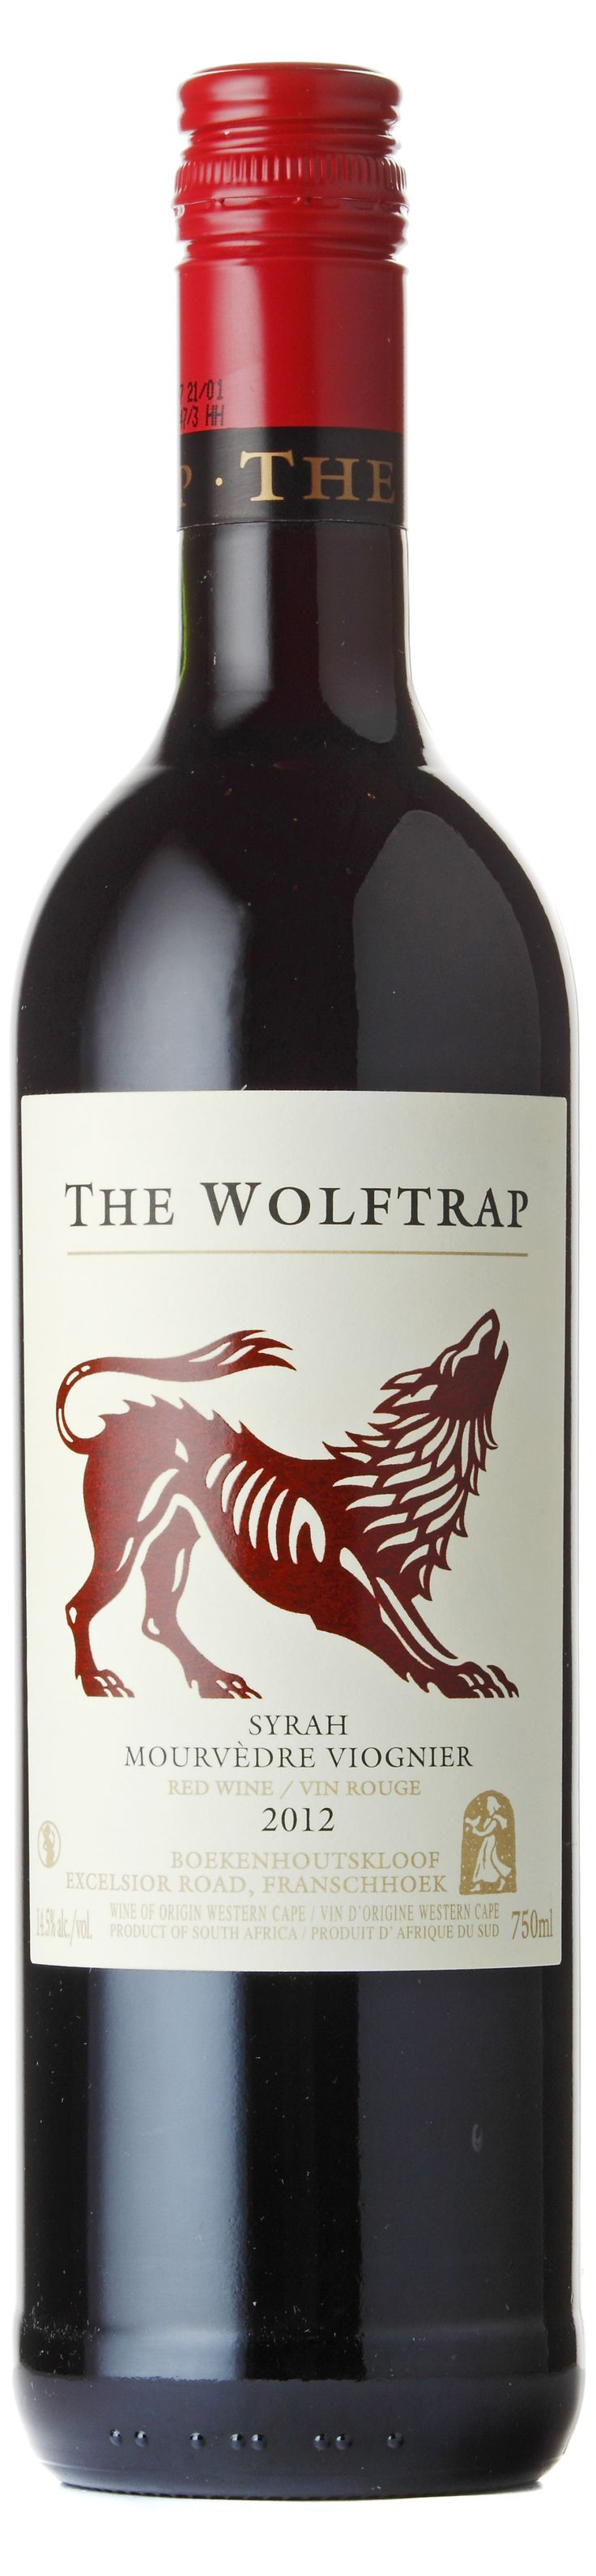 red wine pretty label | The Wolftrap Syrah/Mourvèdre/Viognier 2012 - Expert wine ratings and ...